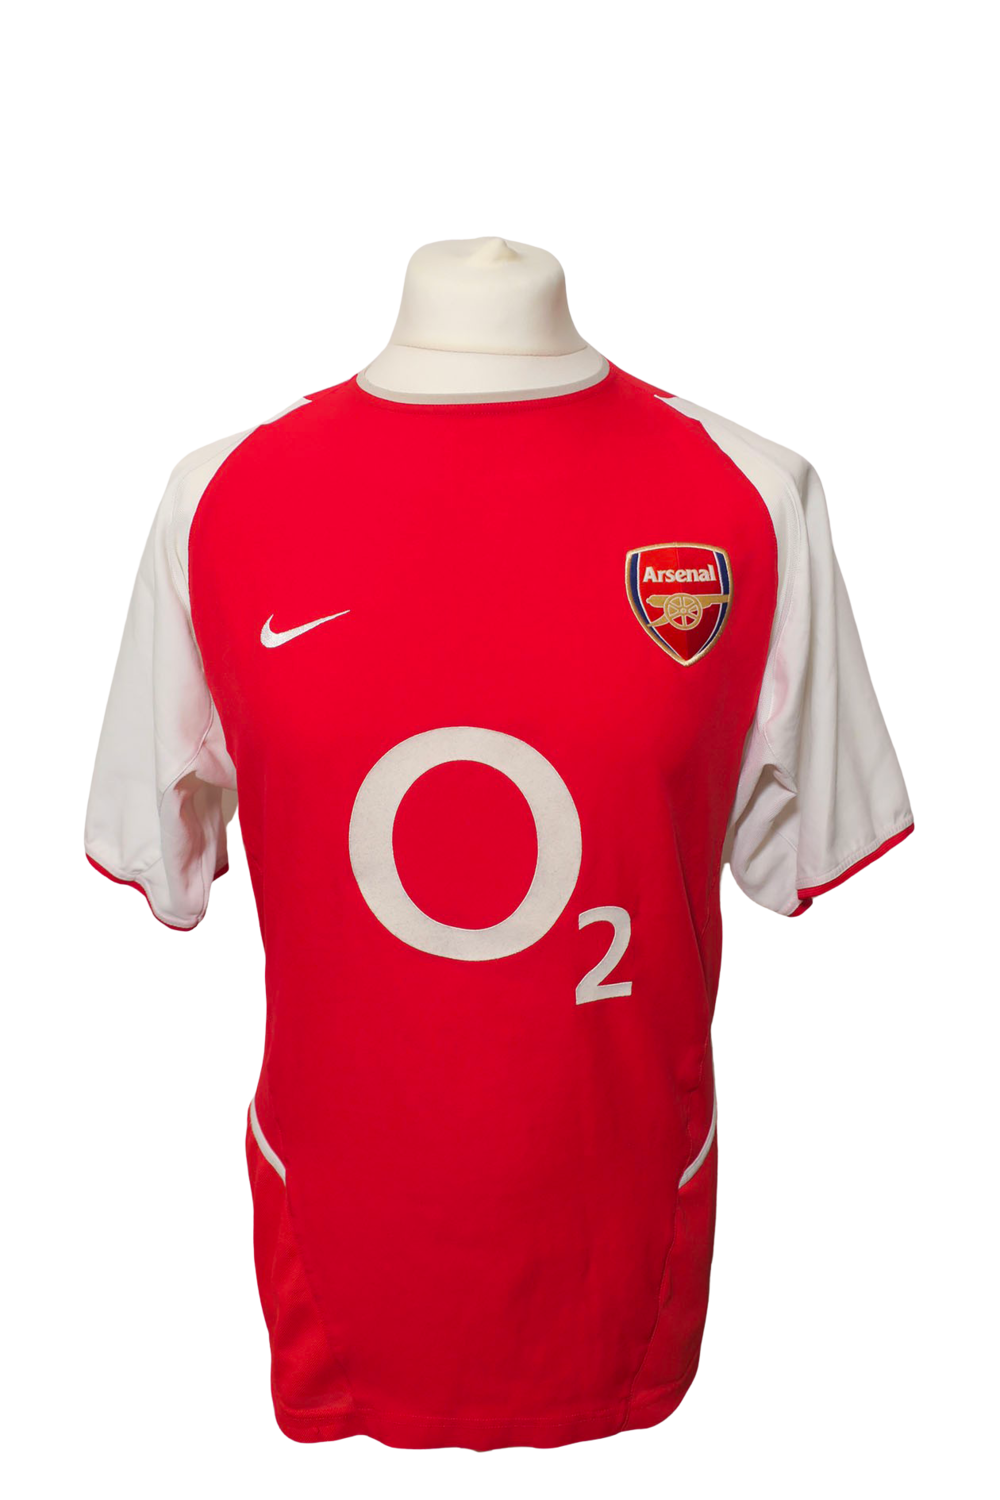 Maillot Arsenal Home 2002/03